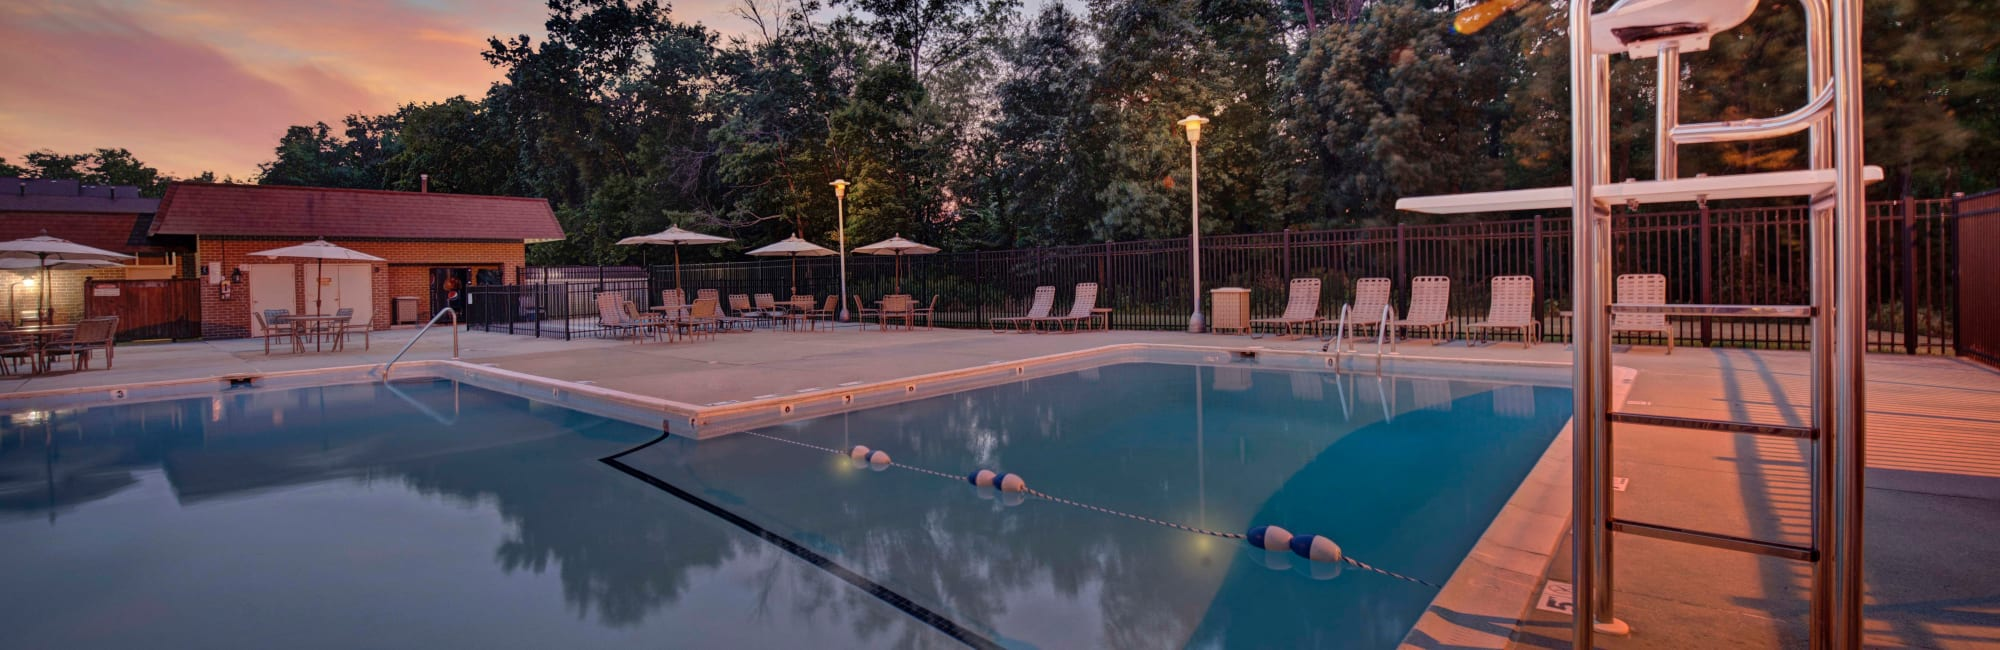 Apartments at Heritage Woods in Bel Air, Maryland